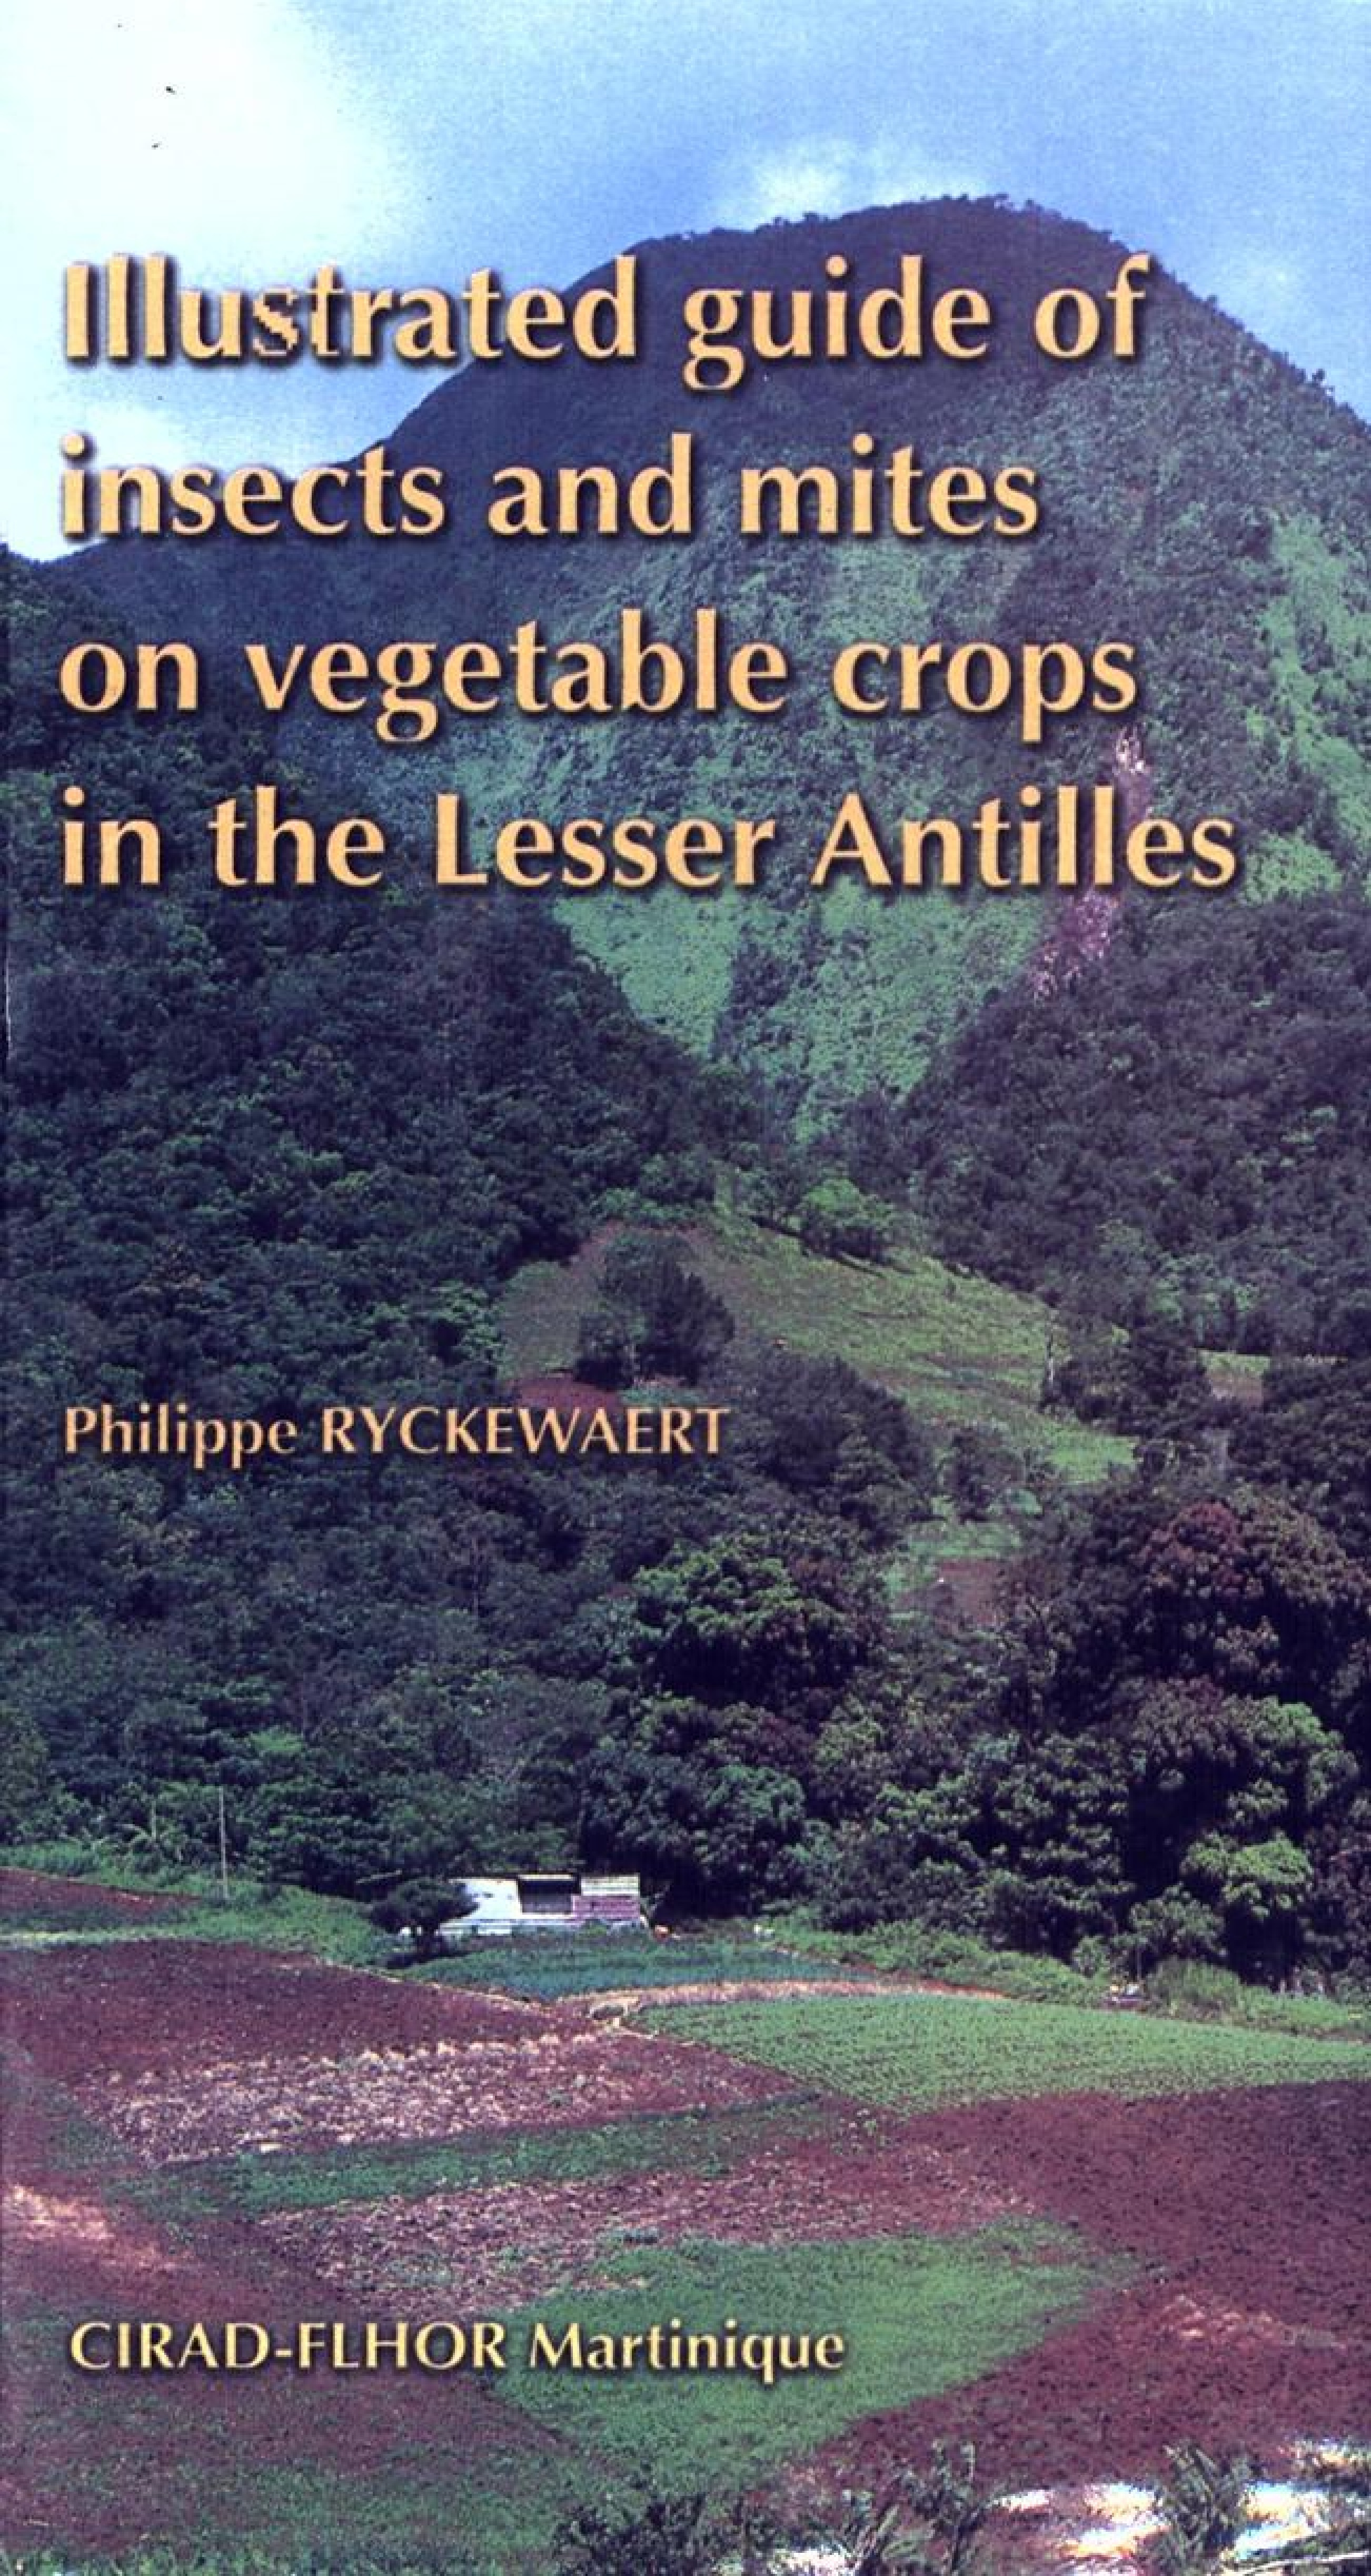 Philippe Ryckewaert Illustrated Guide of Insects and Mites on Vegetable Crops in the Lesser Antilles